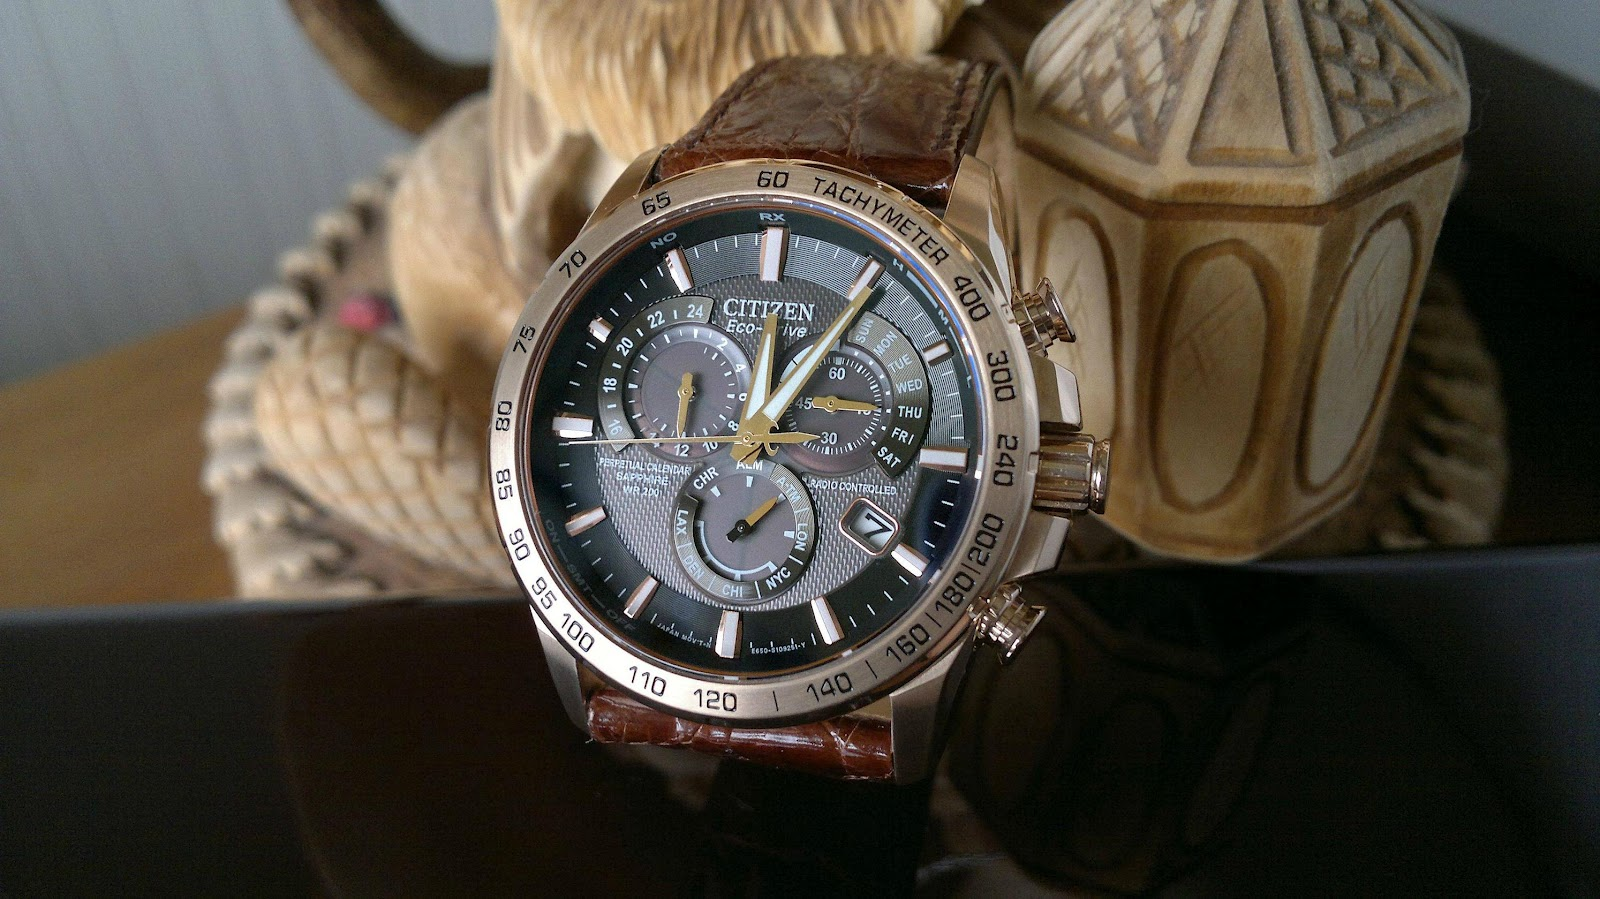 expensive looking affordables watches that punch above